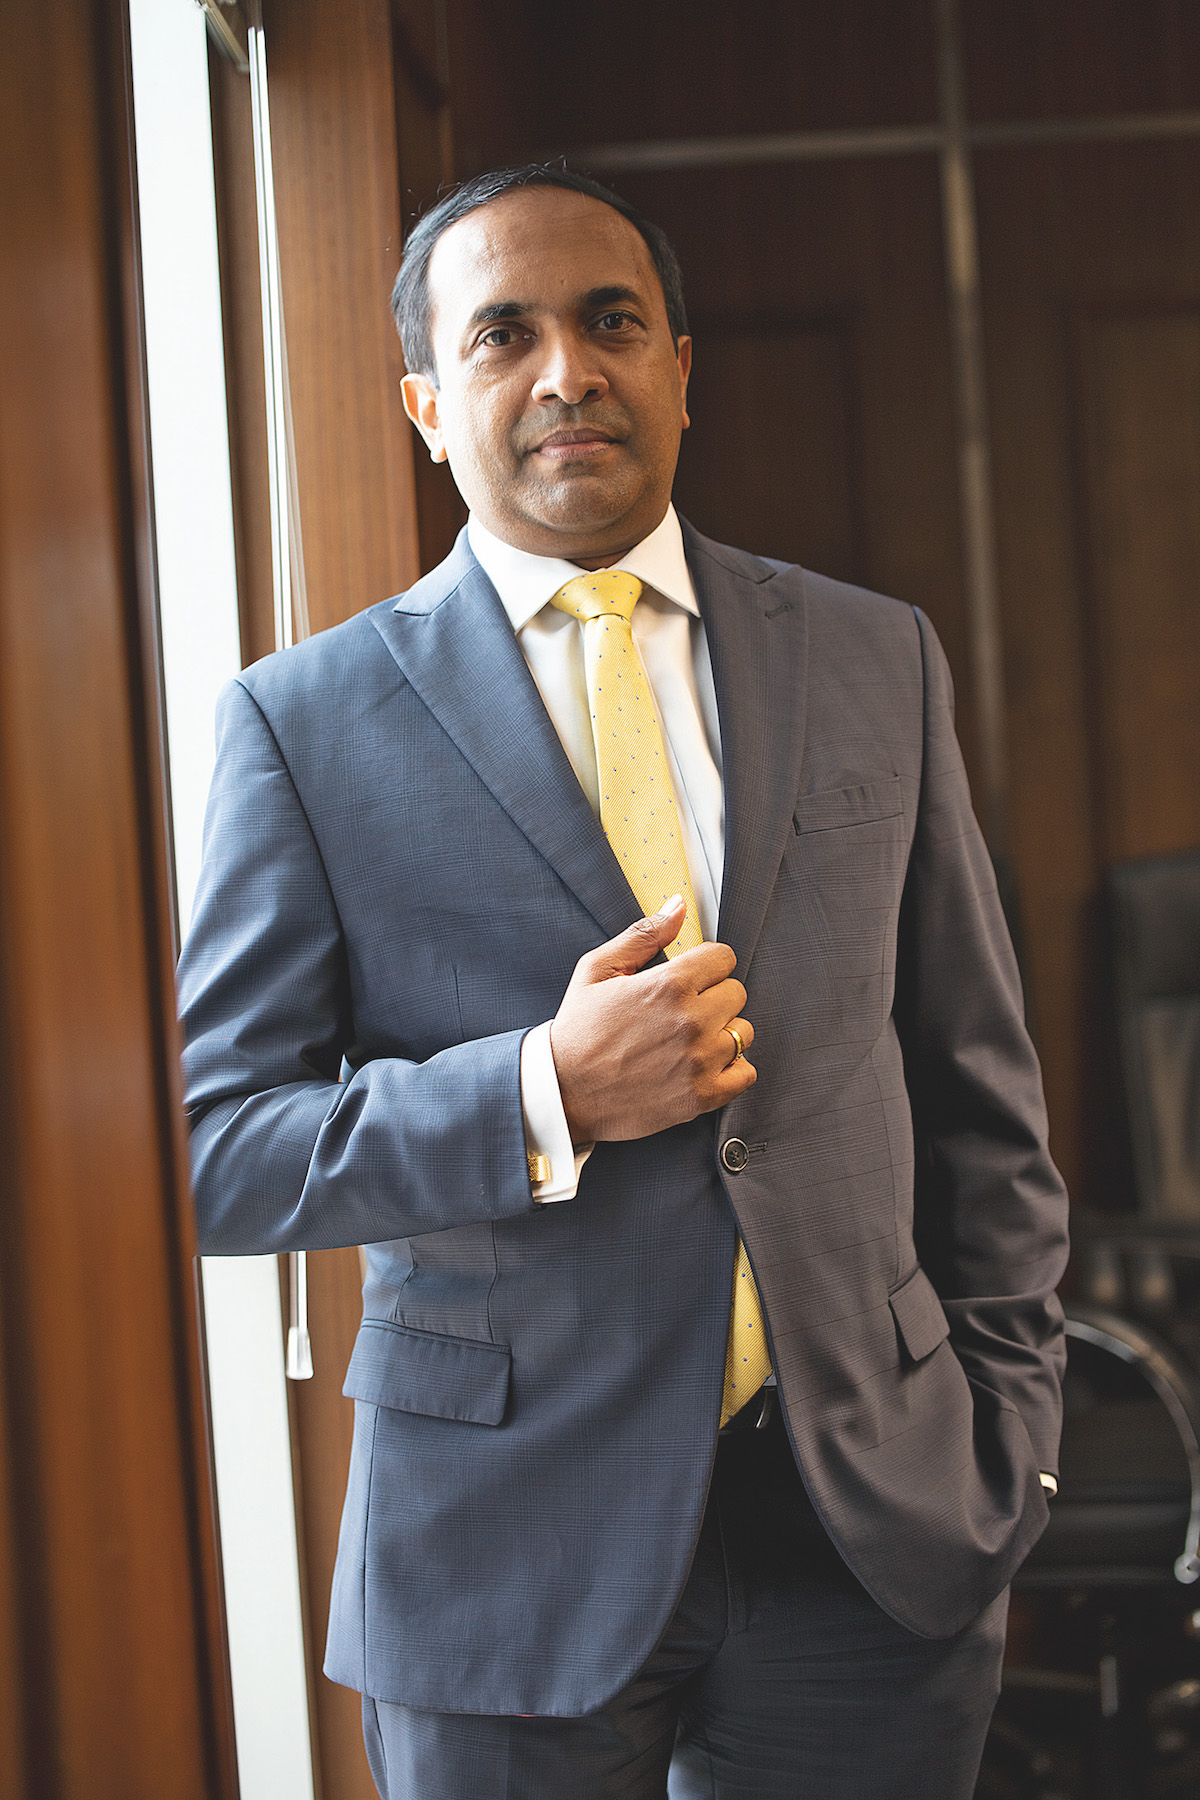 Rajeeva Bandaranaike, CEO of Colombo Stock Exchange